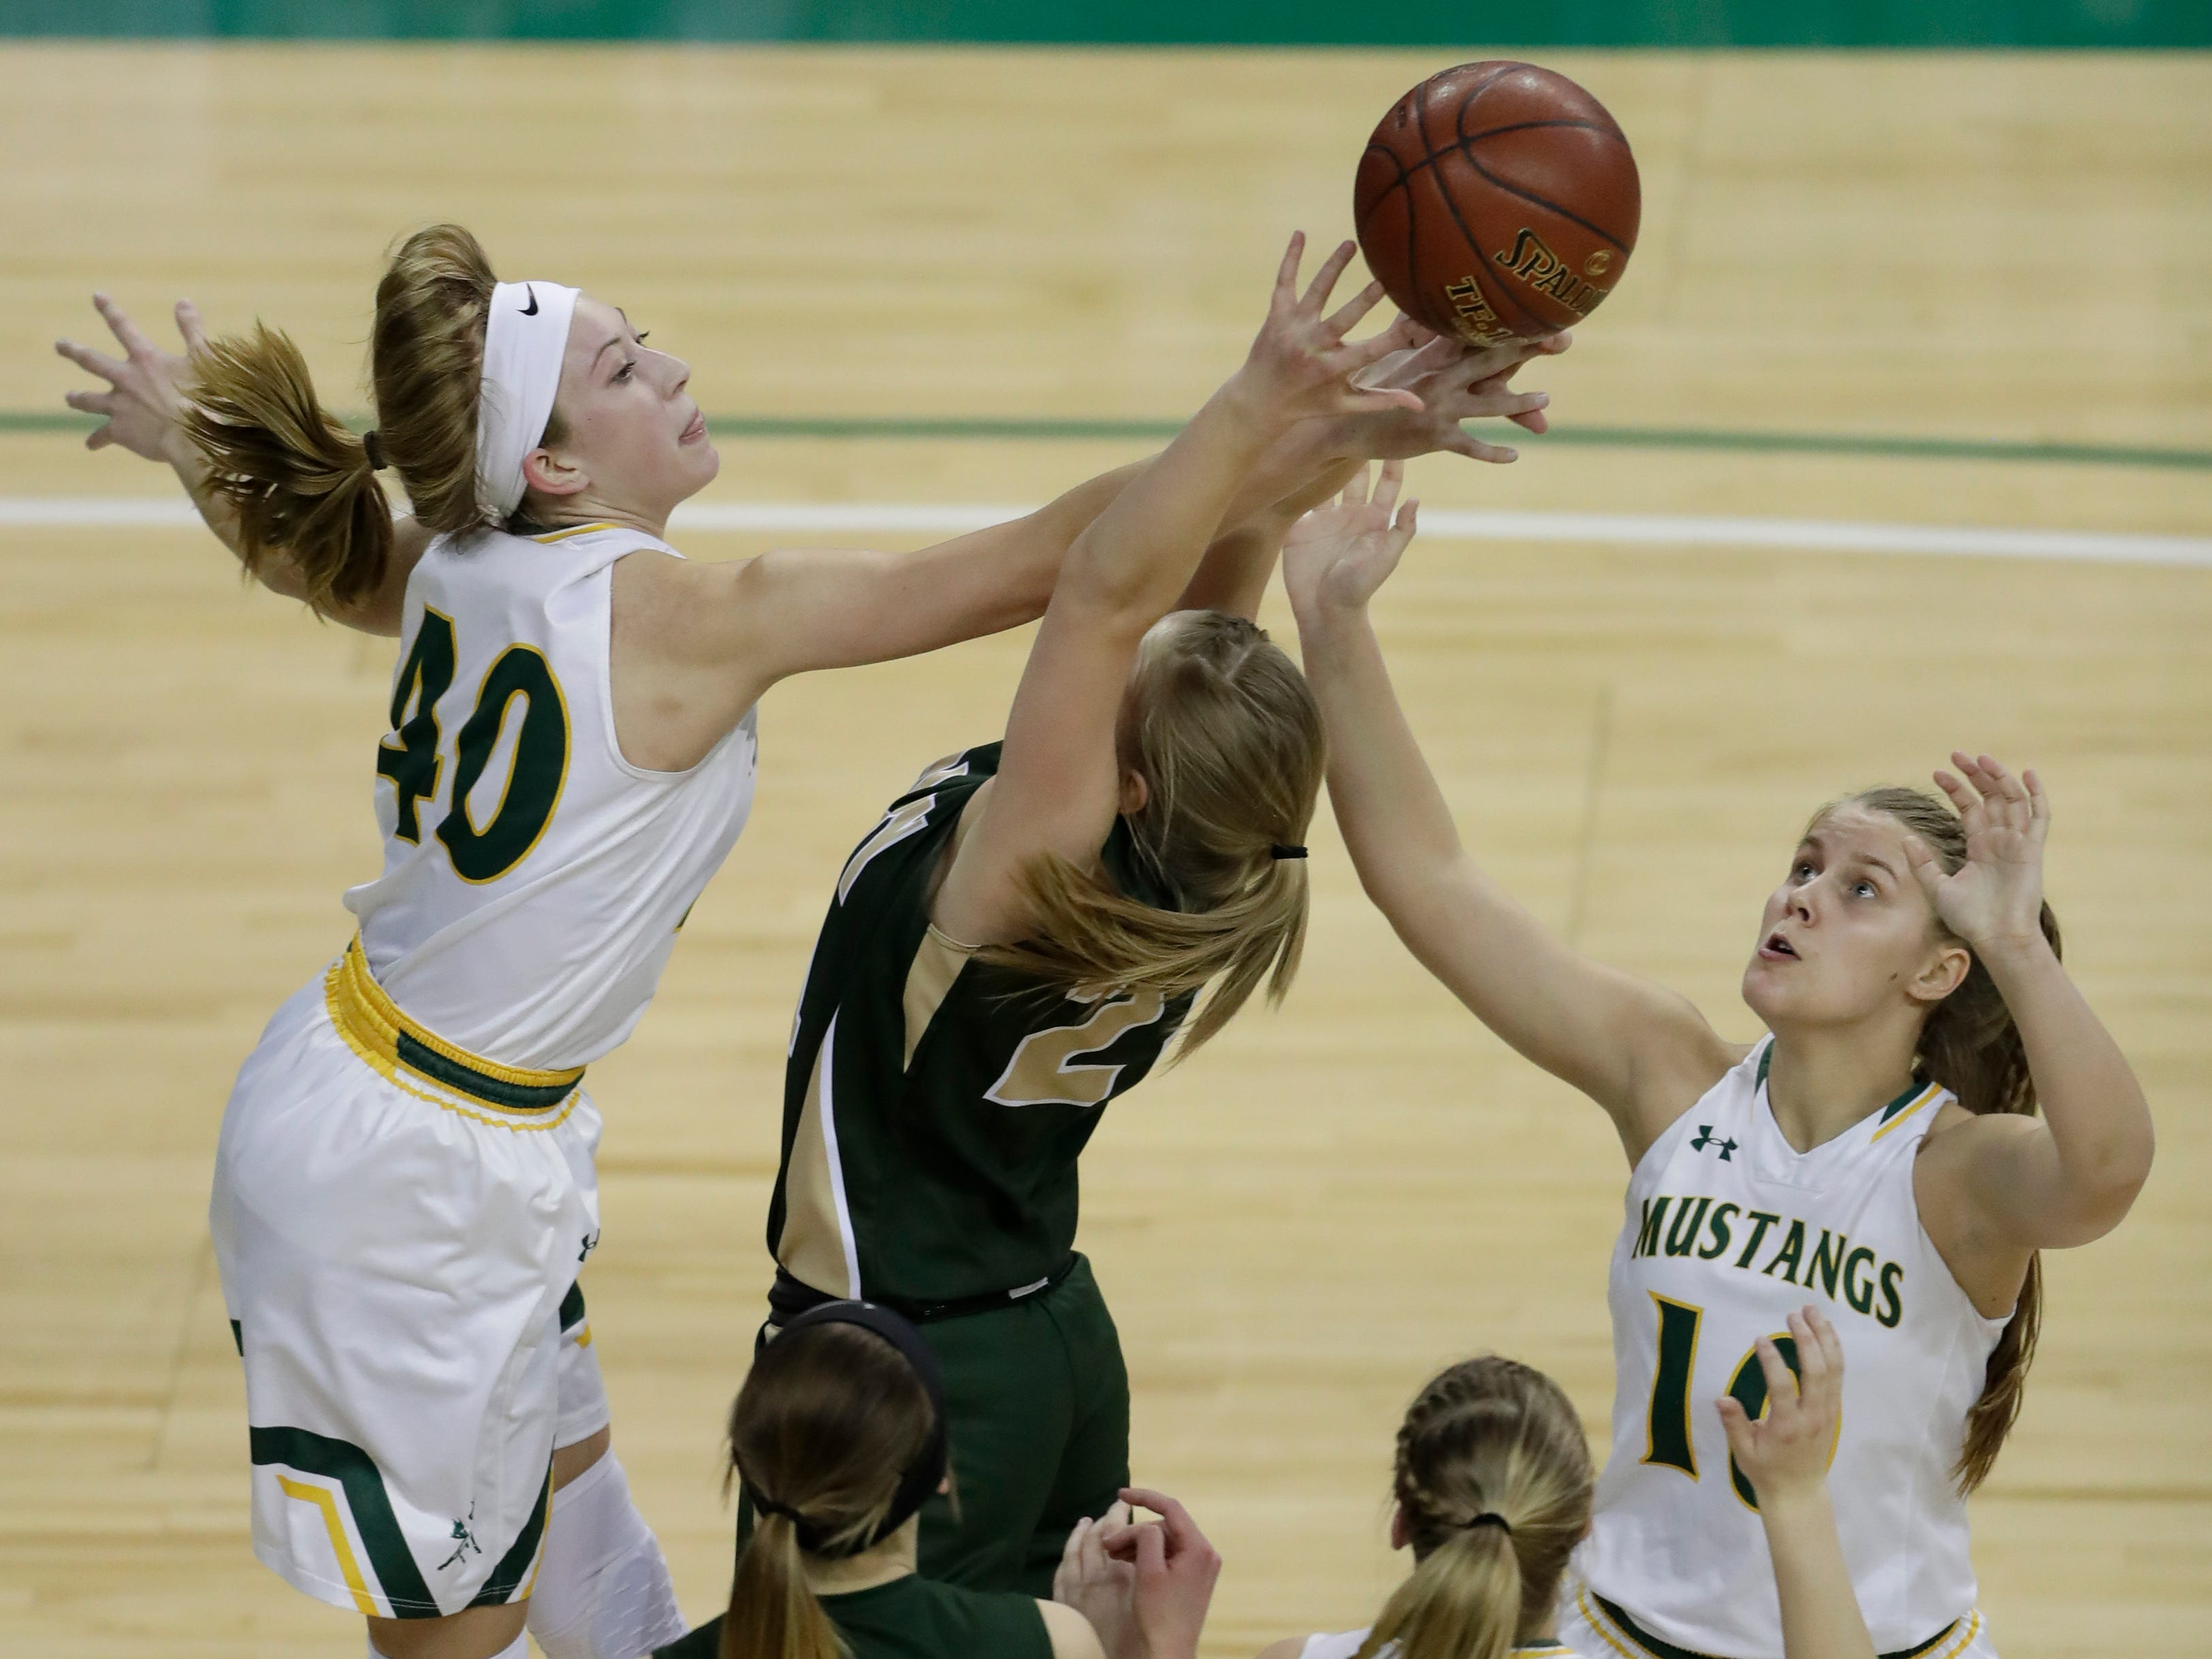 Melrose-Mindoro's Emily Herzberg (40) and Calette Lockington (10) battle for a rebound against Colby's Lexi Underwood (24) during their Division 4 semifinal game at the WIAA girls state basketball tournament Thursday, March 7, 2019, at the Resch Center in Ashwaubenon, Wis.